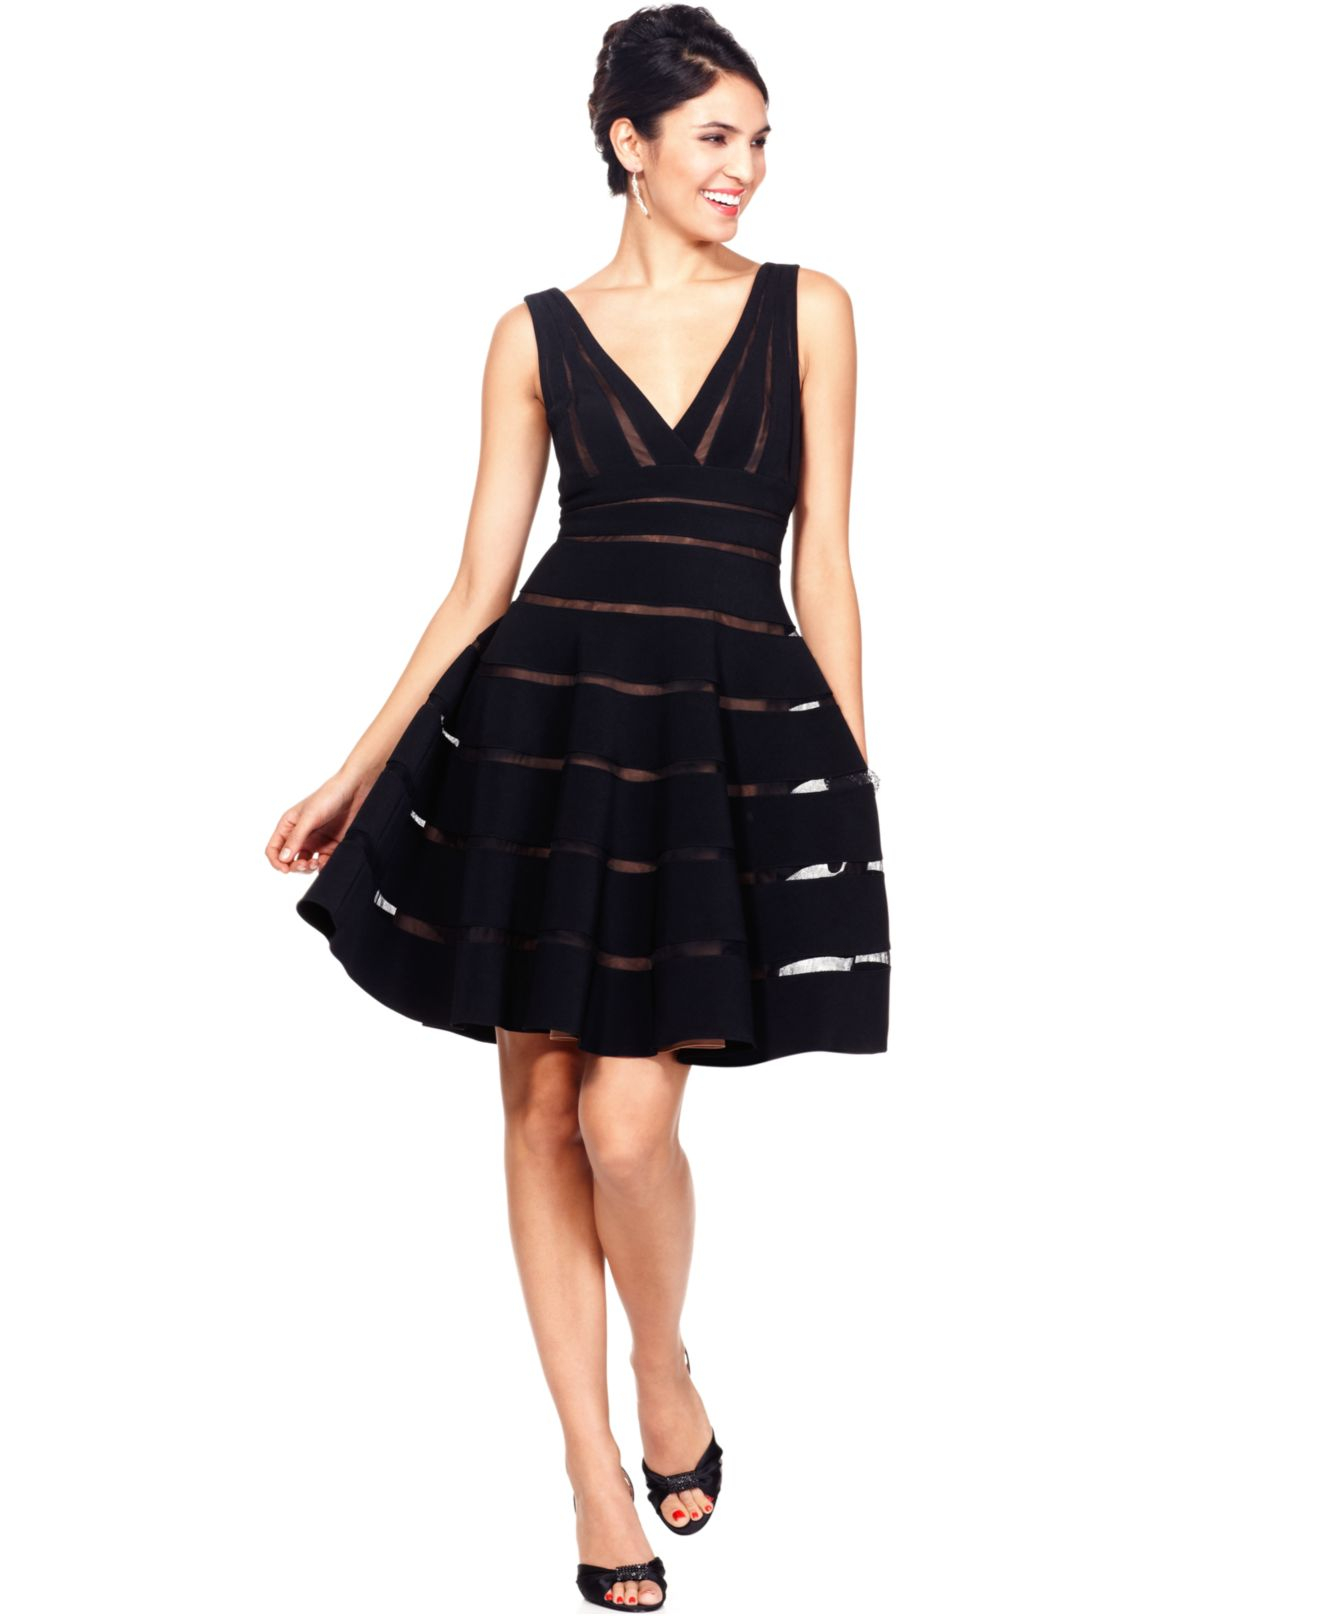 Js collections Sleeveless Striped A-line Dress in Black | Lyst